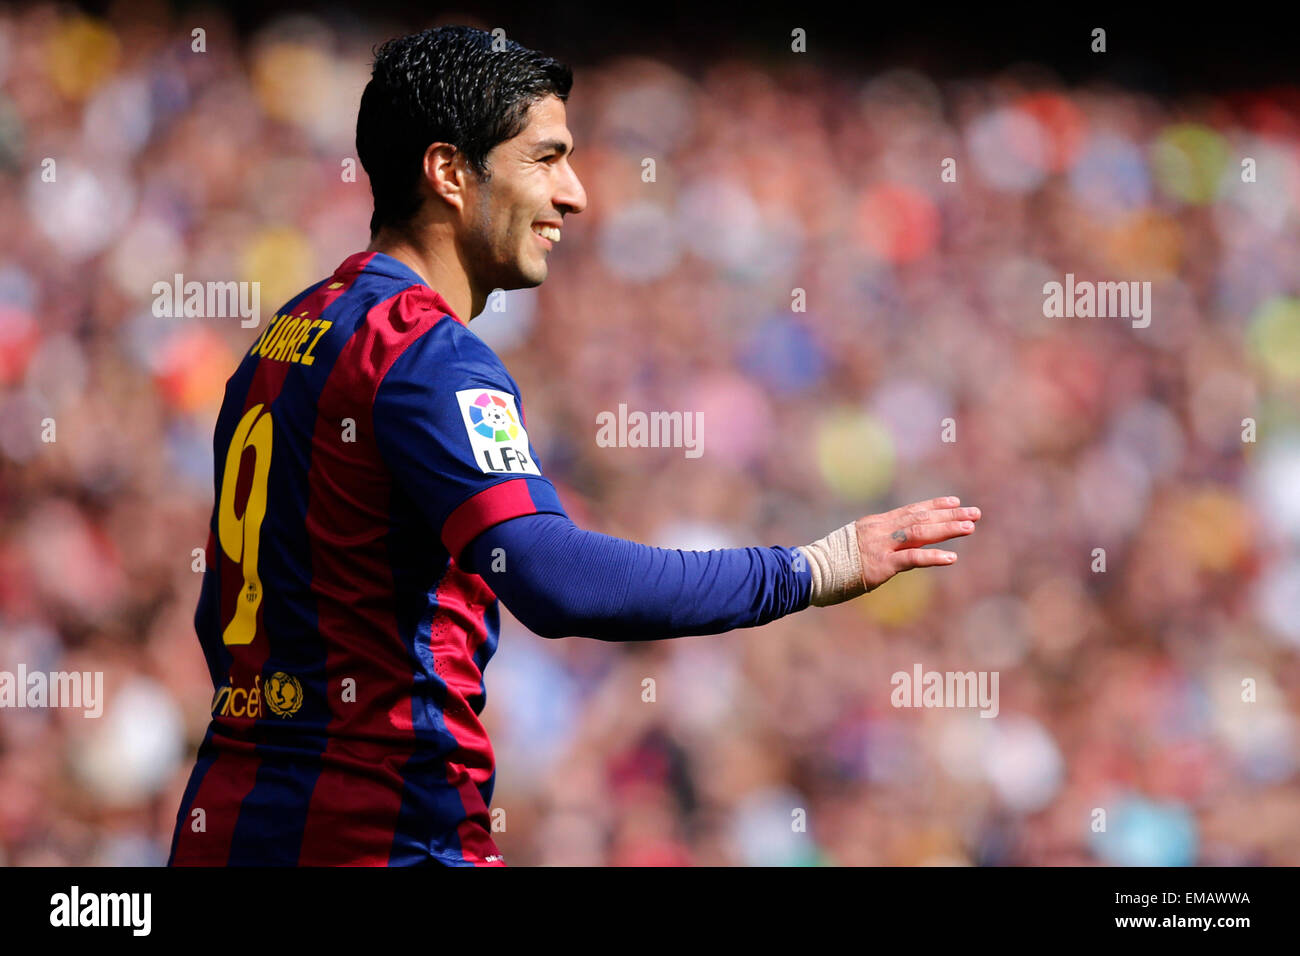 Barcelona, Spain. 18th Apr, 2015. Barcelona's Luis Suarez reacts during the Spanish first division football - Stock Image